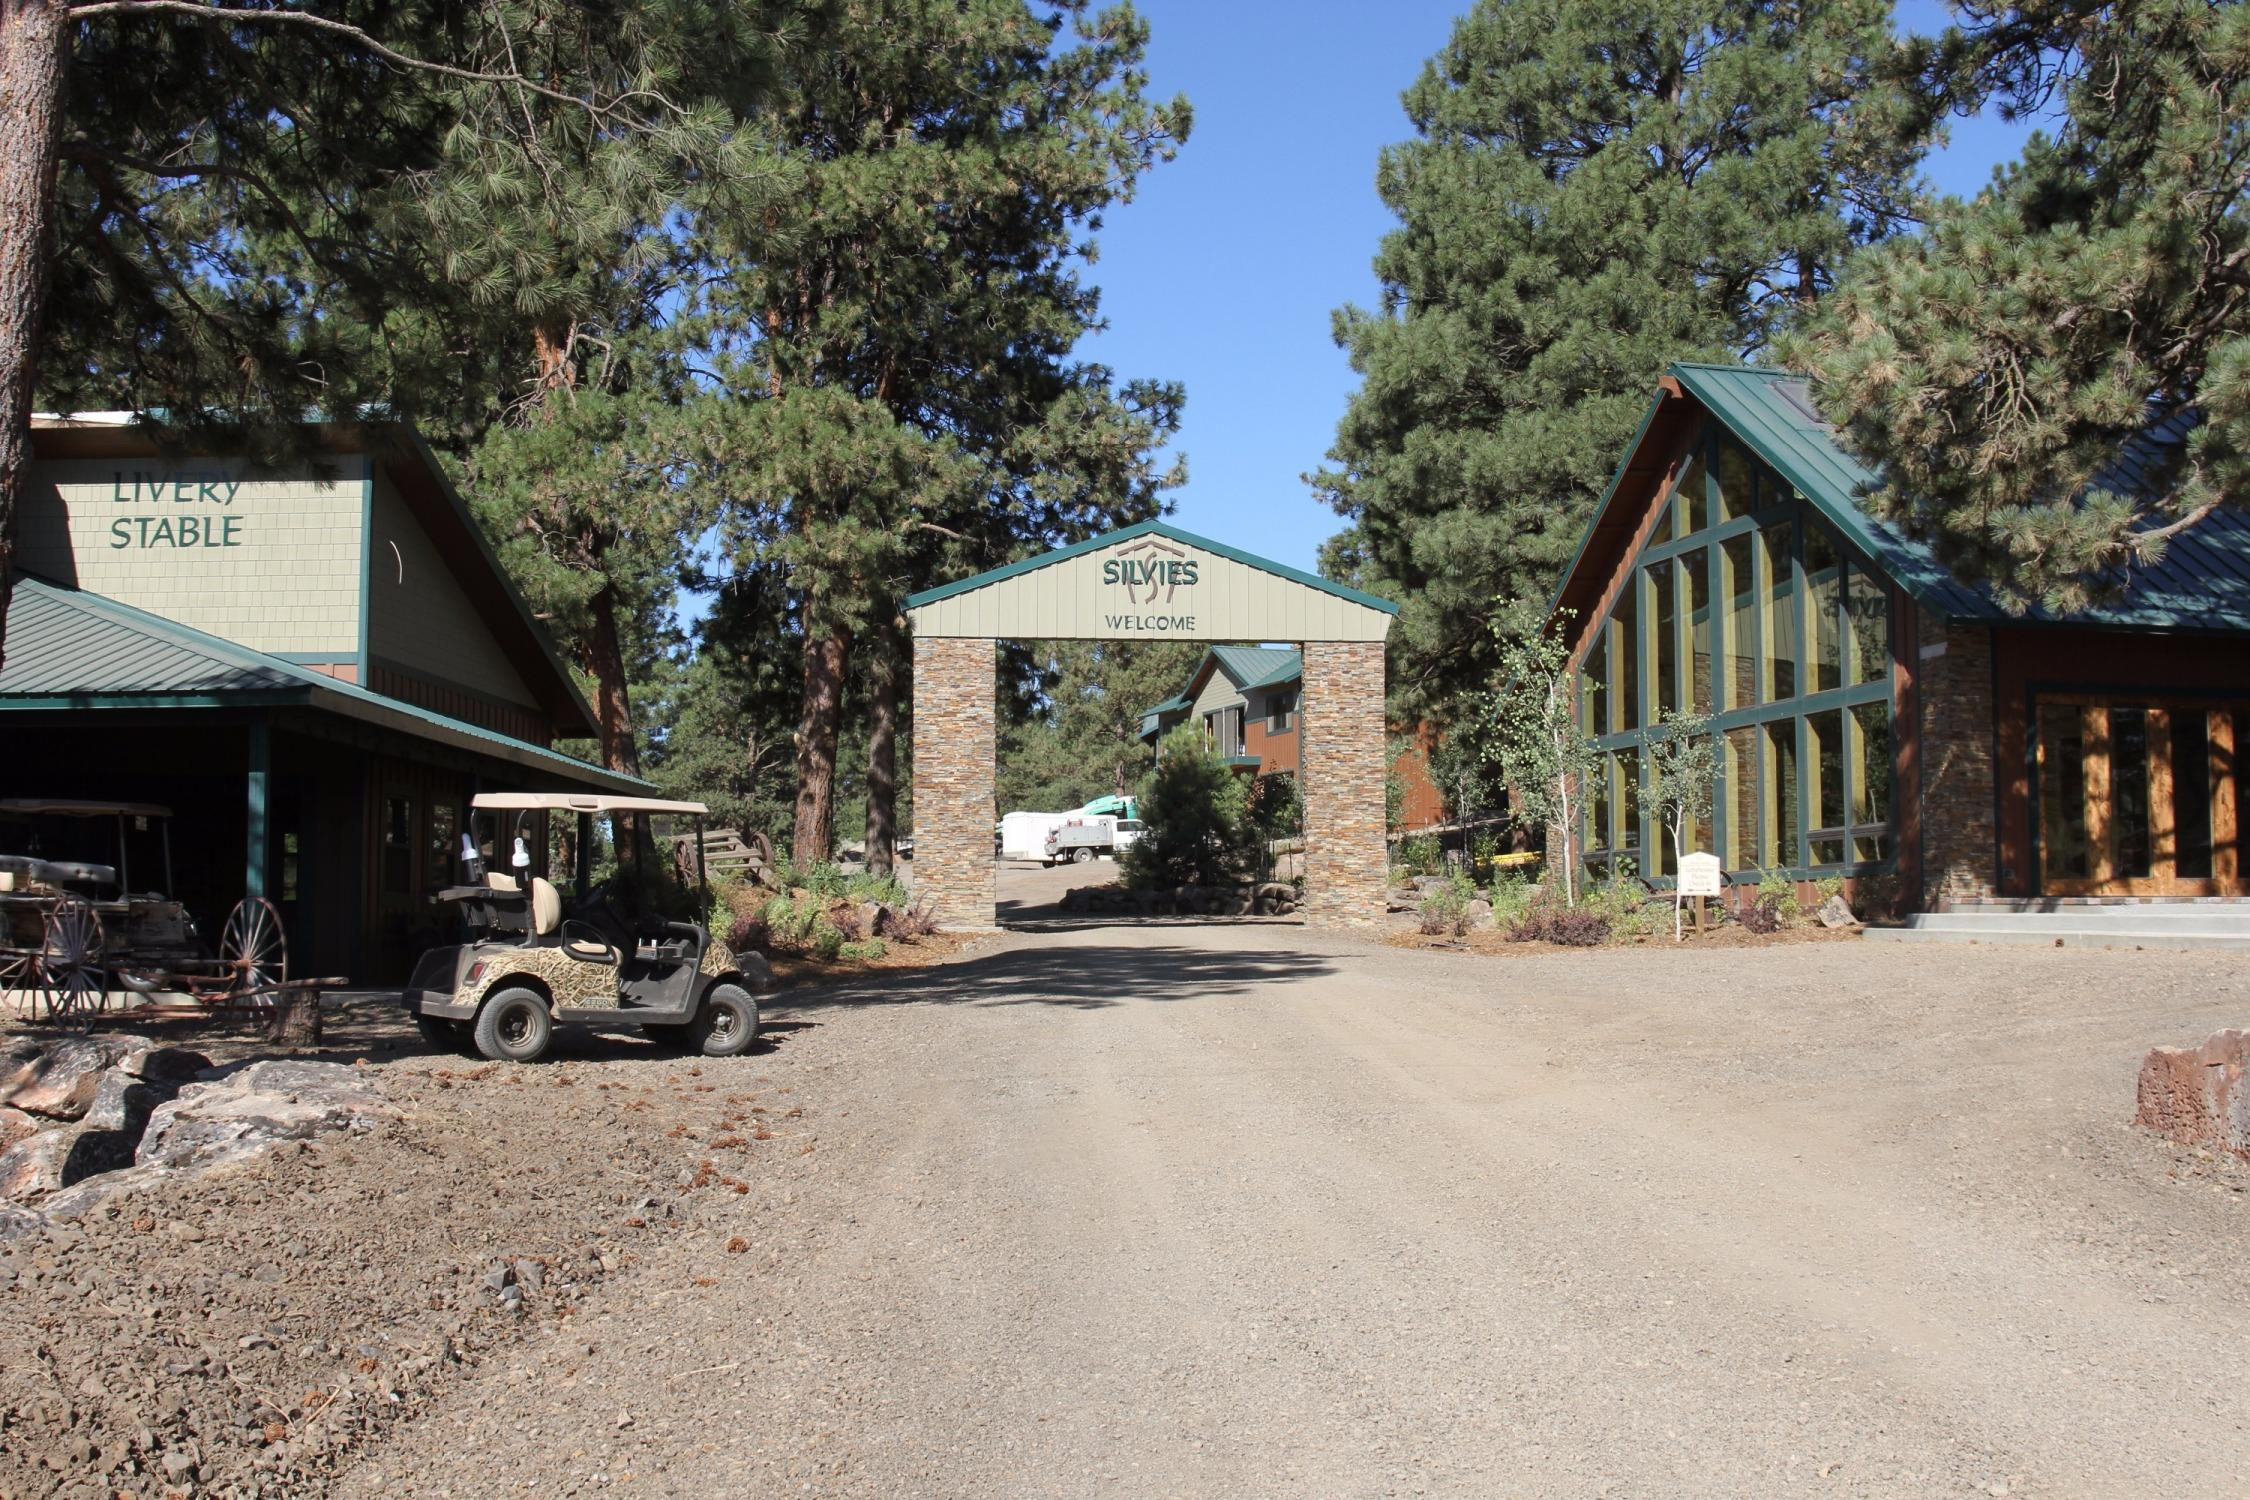 The entrance to Silvies Valley Ranch in eastern Oregon.